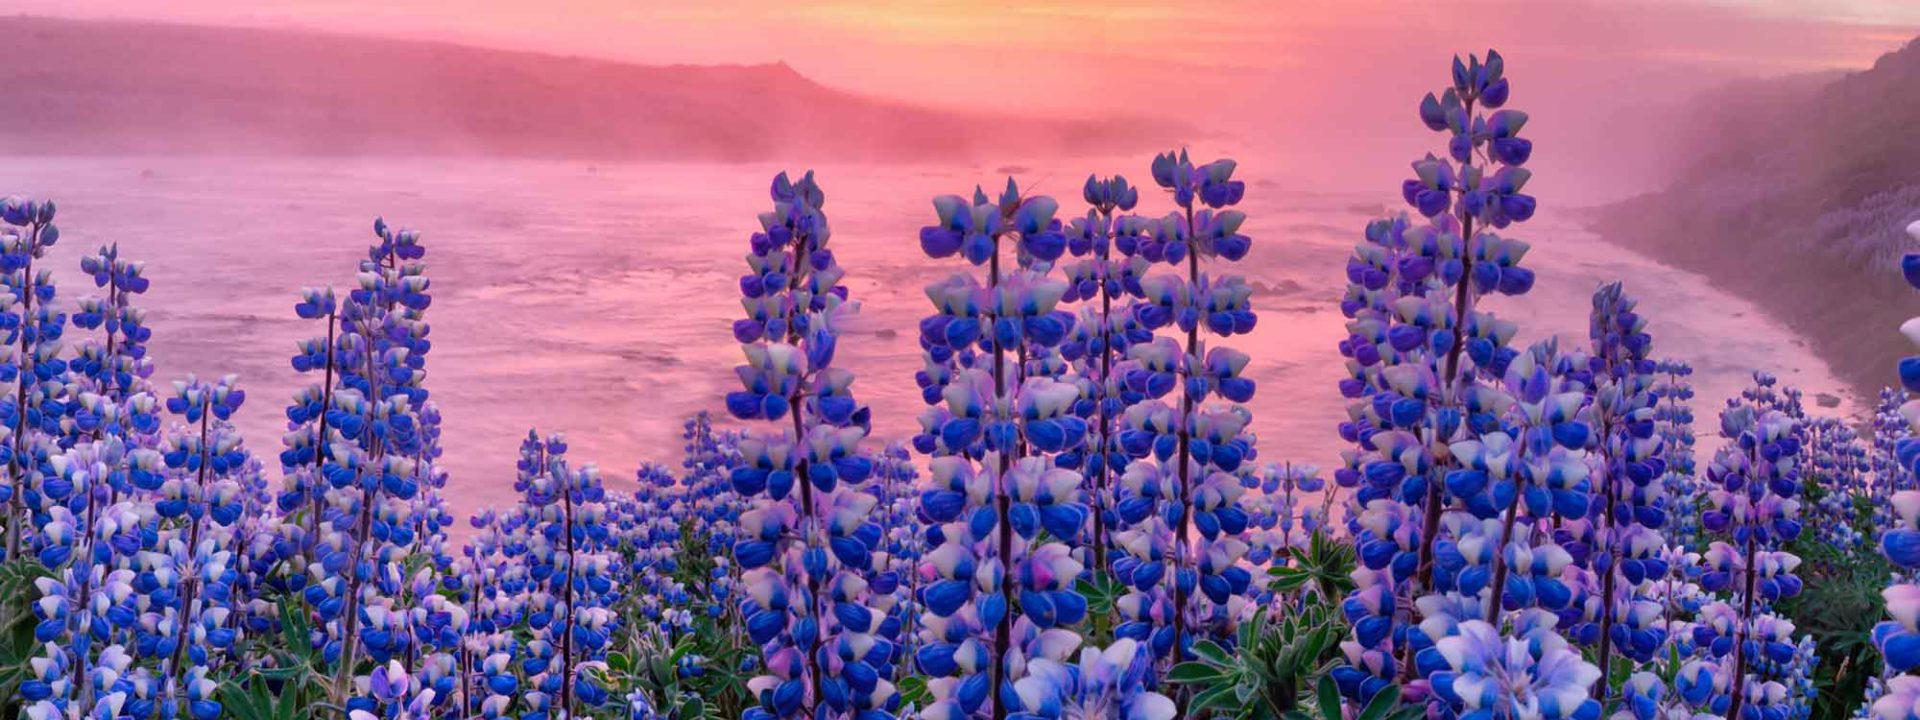 Lupins in Iceland